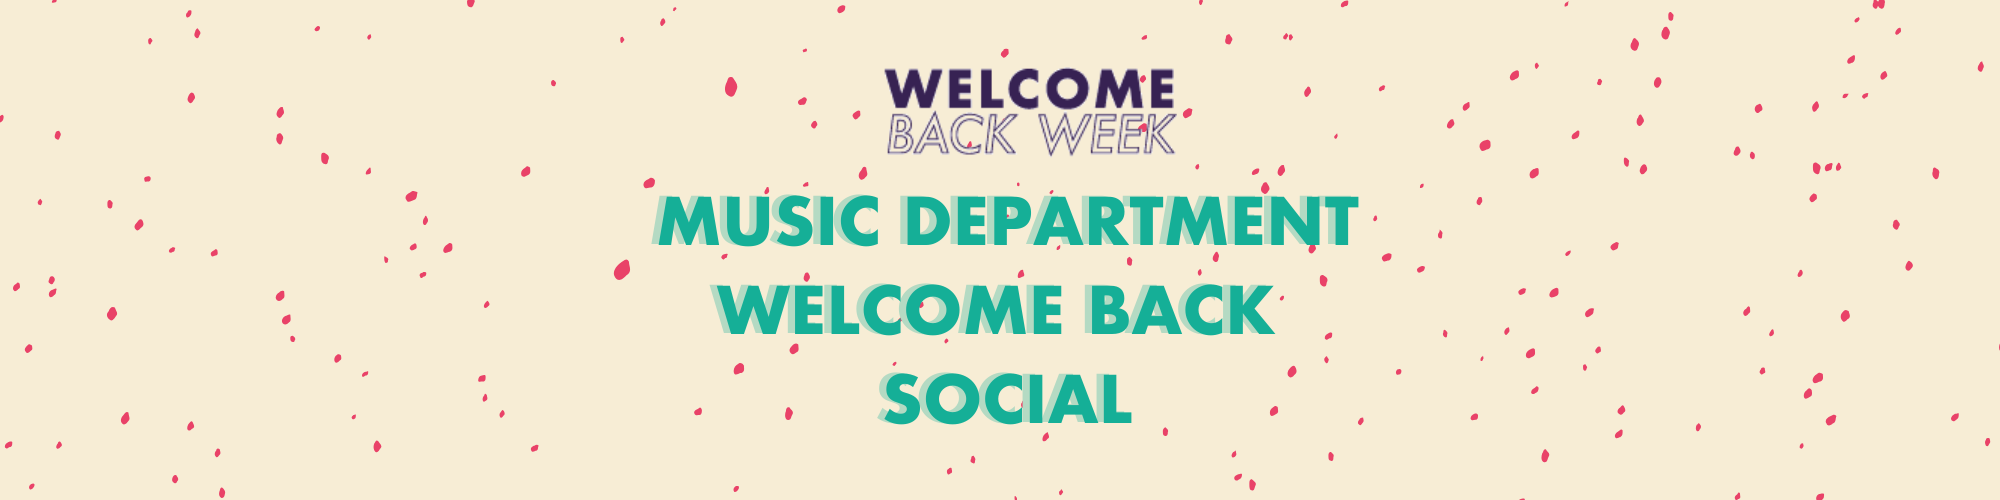 Music Department Welcome Back Social